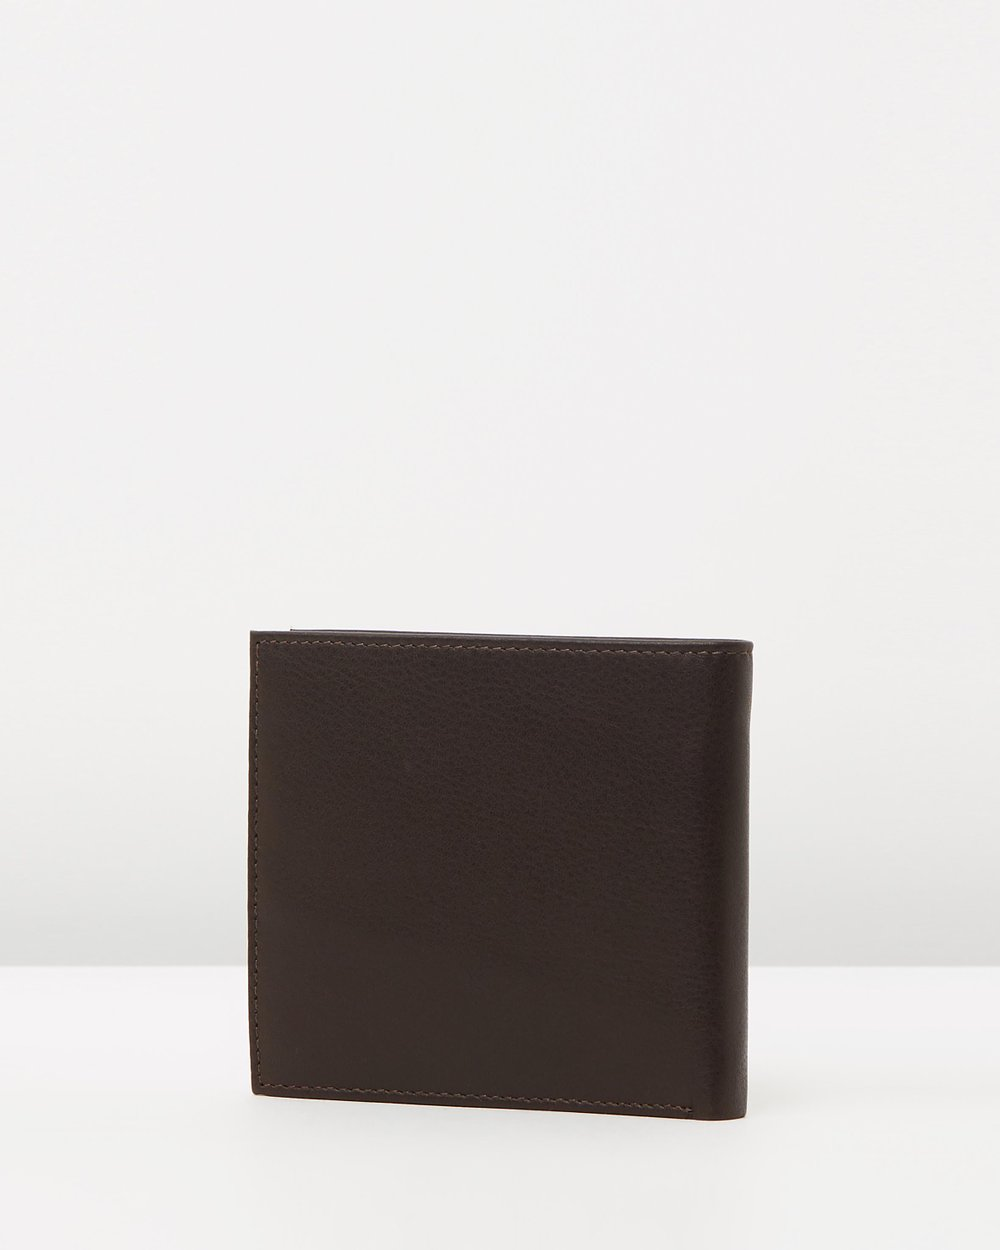 aa1a506b7c5a9 Antonys Leather Wallet